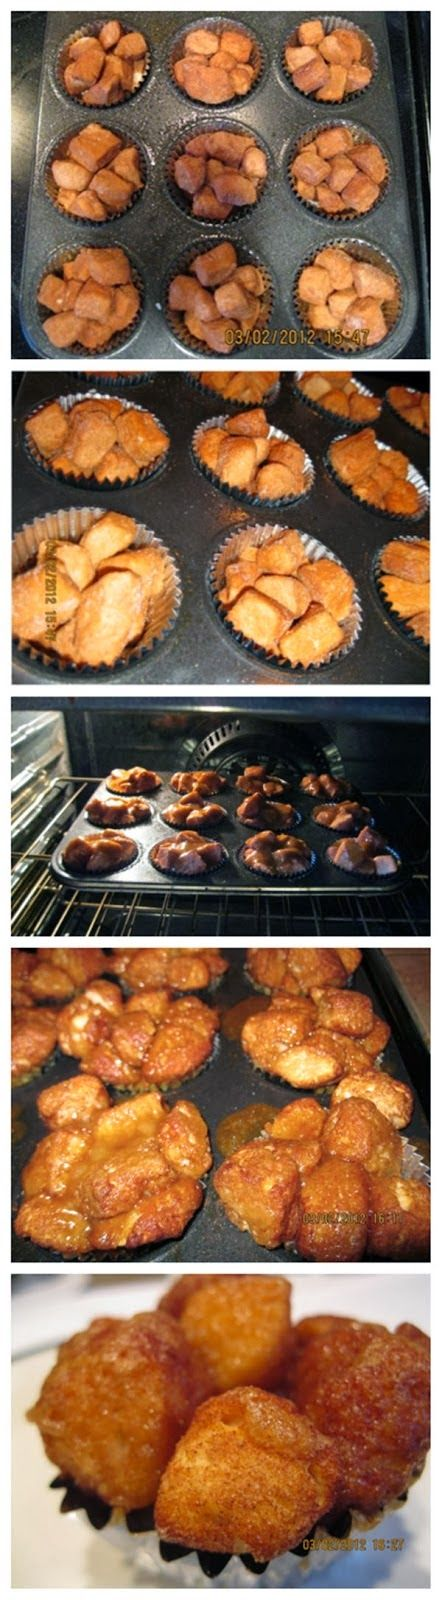 Exclusive Foods: Easy Monkey Bread Muffins Recipe